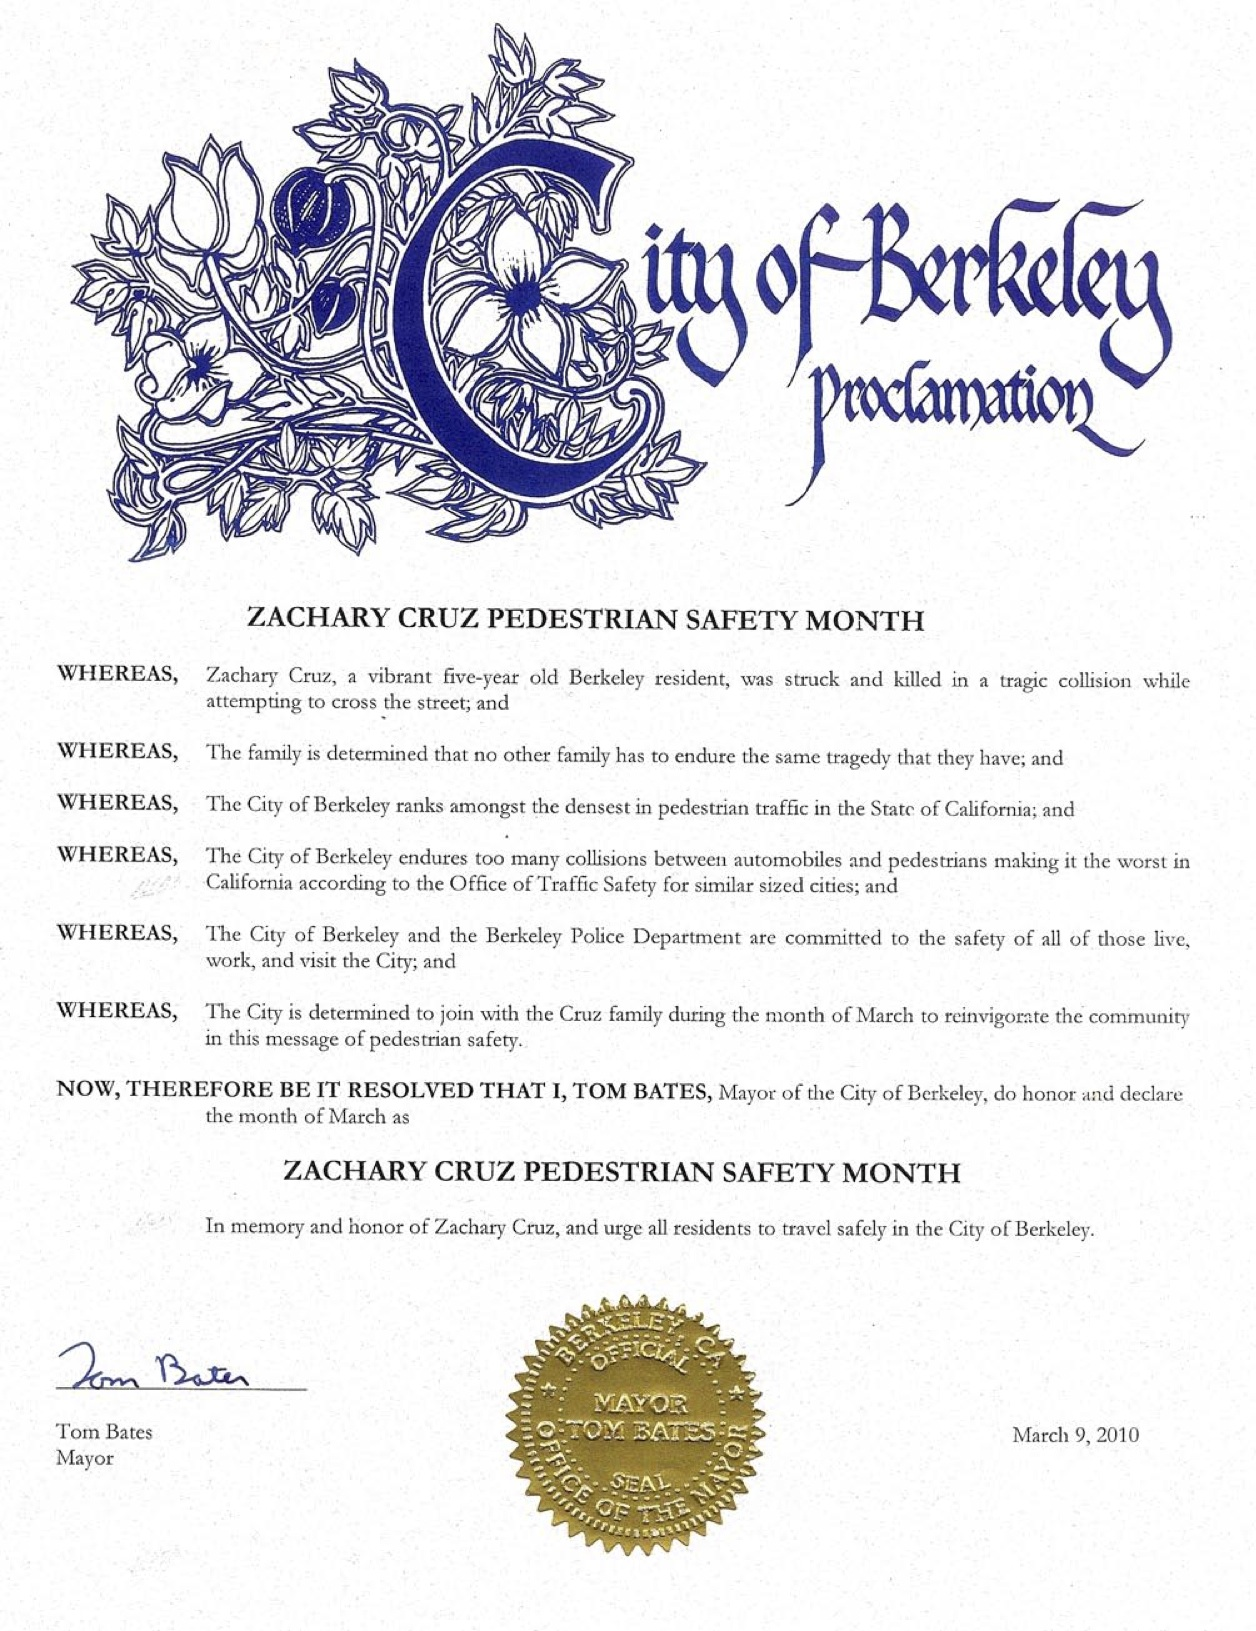 The official proclamation issued by the City of Berkeley in 2010 naming March Zachary Cruz Pedestrian Safety Month in the City.